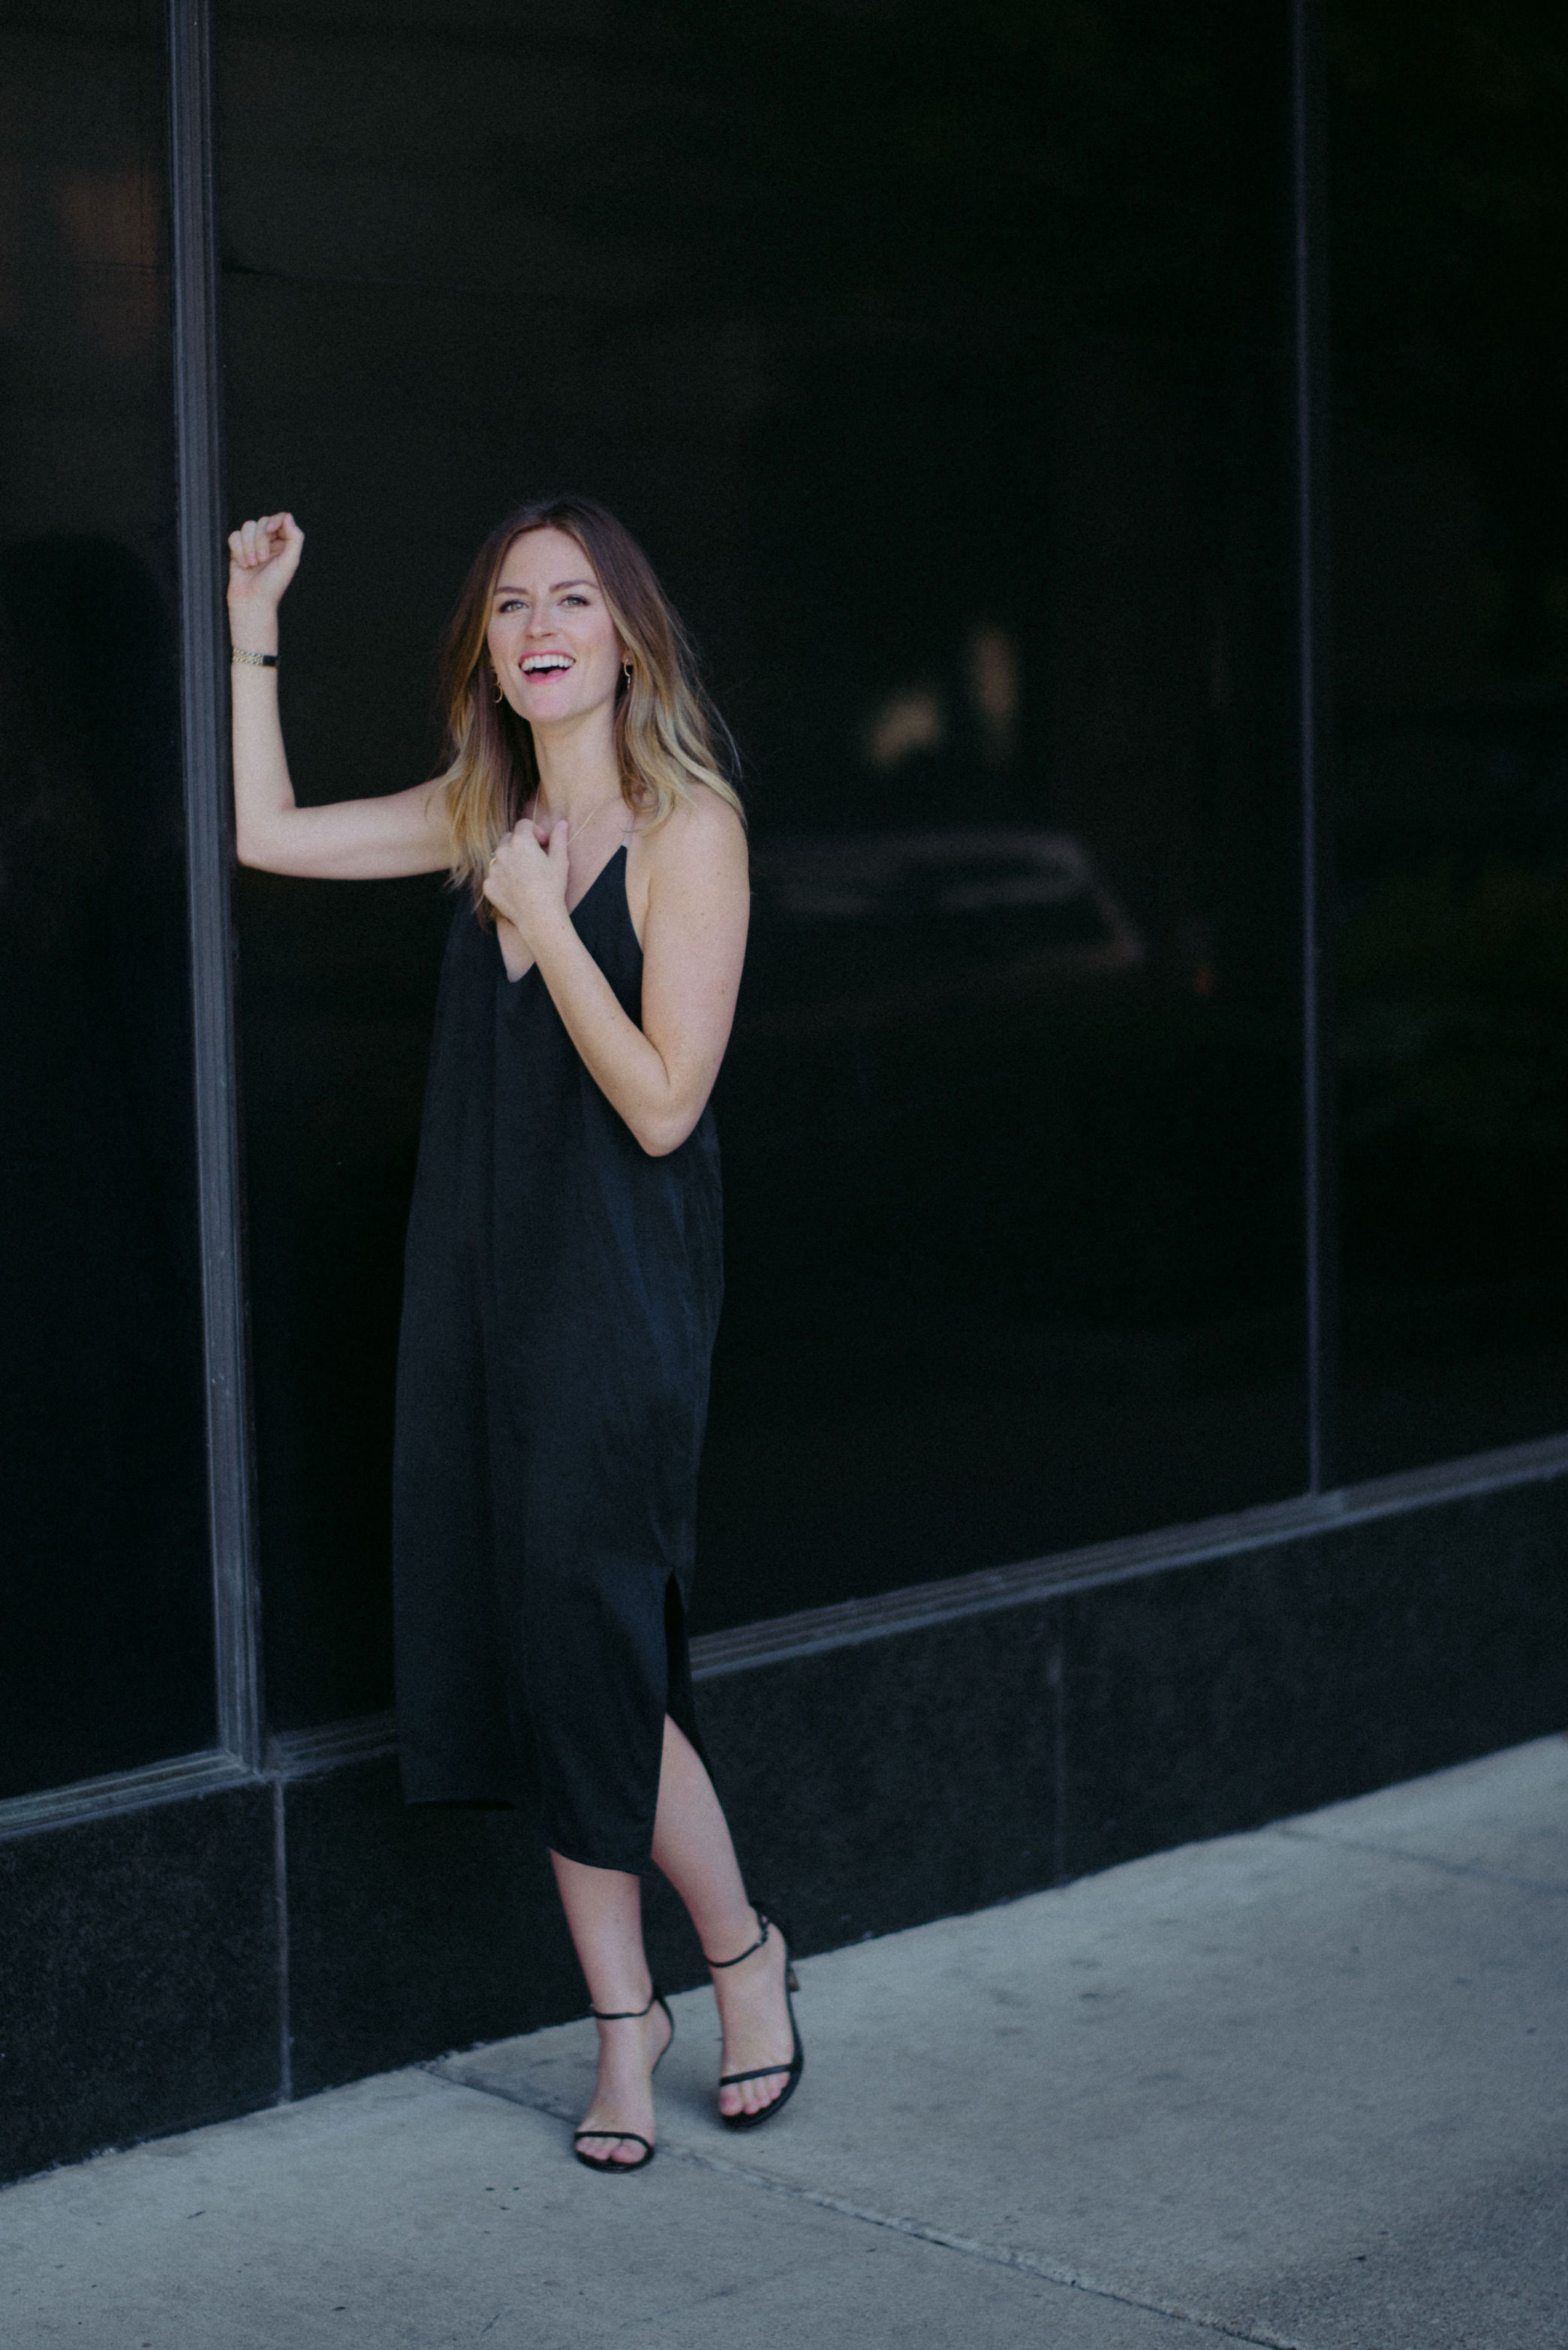 Silk dress outfit // A Week Of  Nashville-Chic Ethical Outfits With Jordan Soderholm, Fashion Director At ABLE on The Good Trade